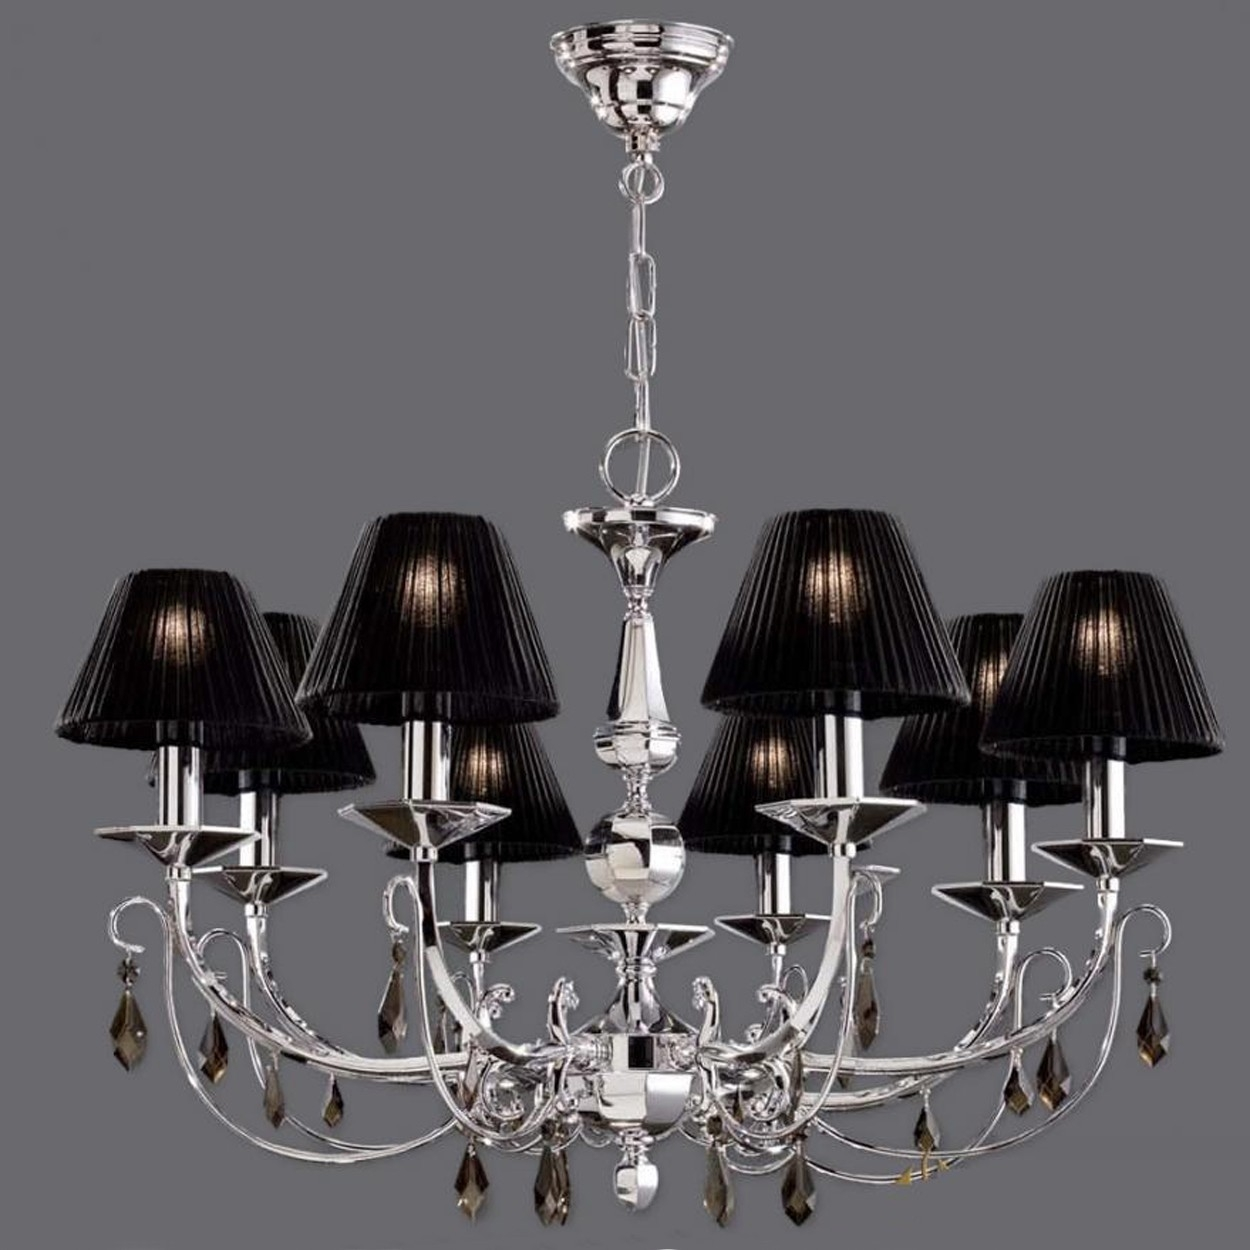 Outstanding Living Room Decor With Mini Chandelier Lamp Shades With Clip On Chandelier Lamp Shades (Image 20 of 25)